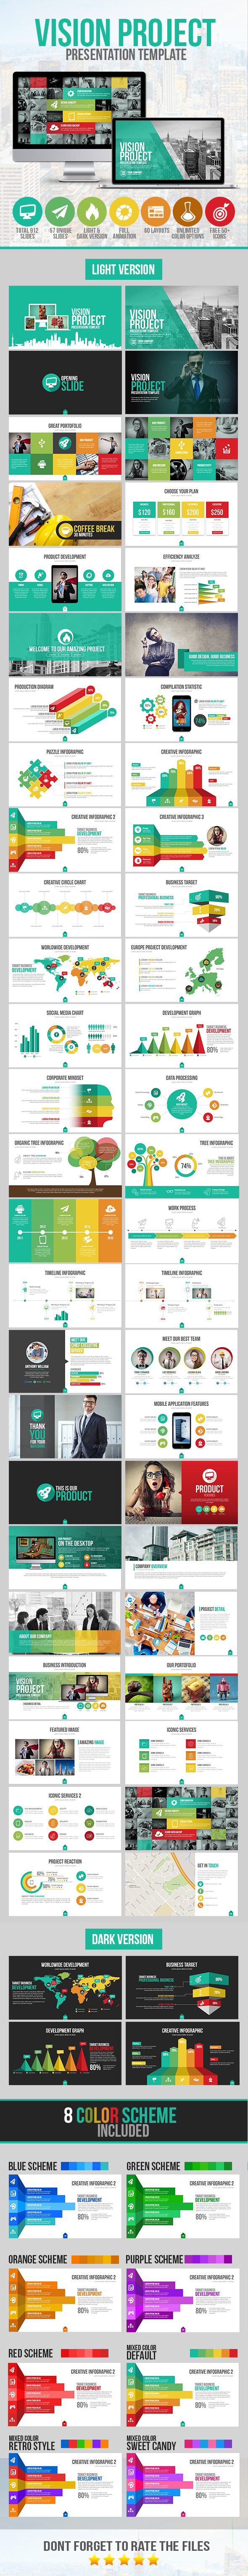 Vision Project Presentation Template - Business PowerPoint Templates